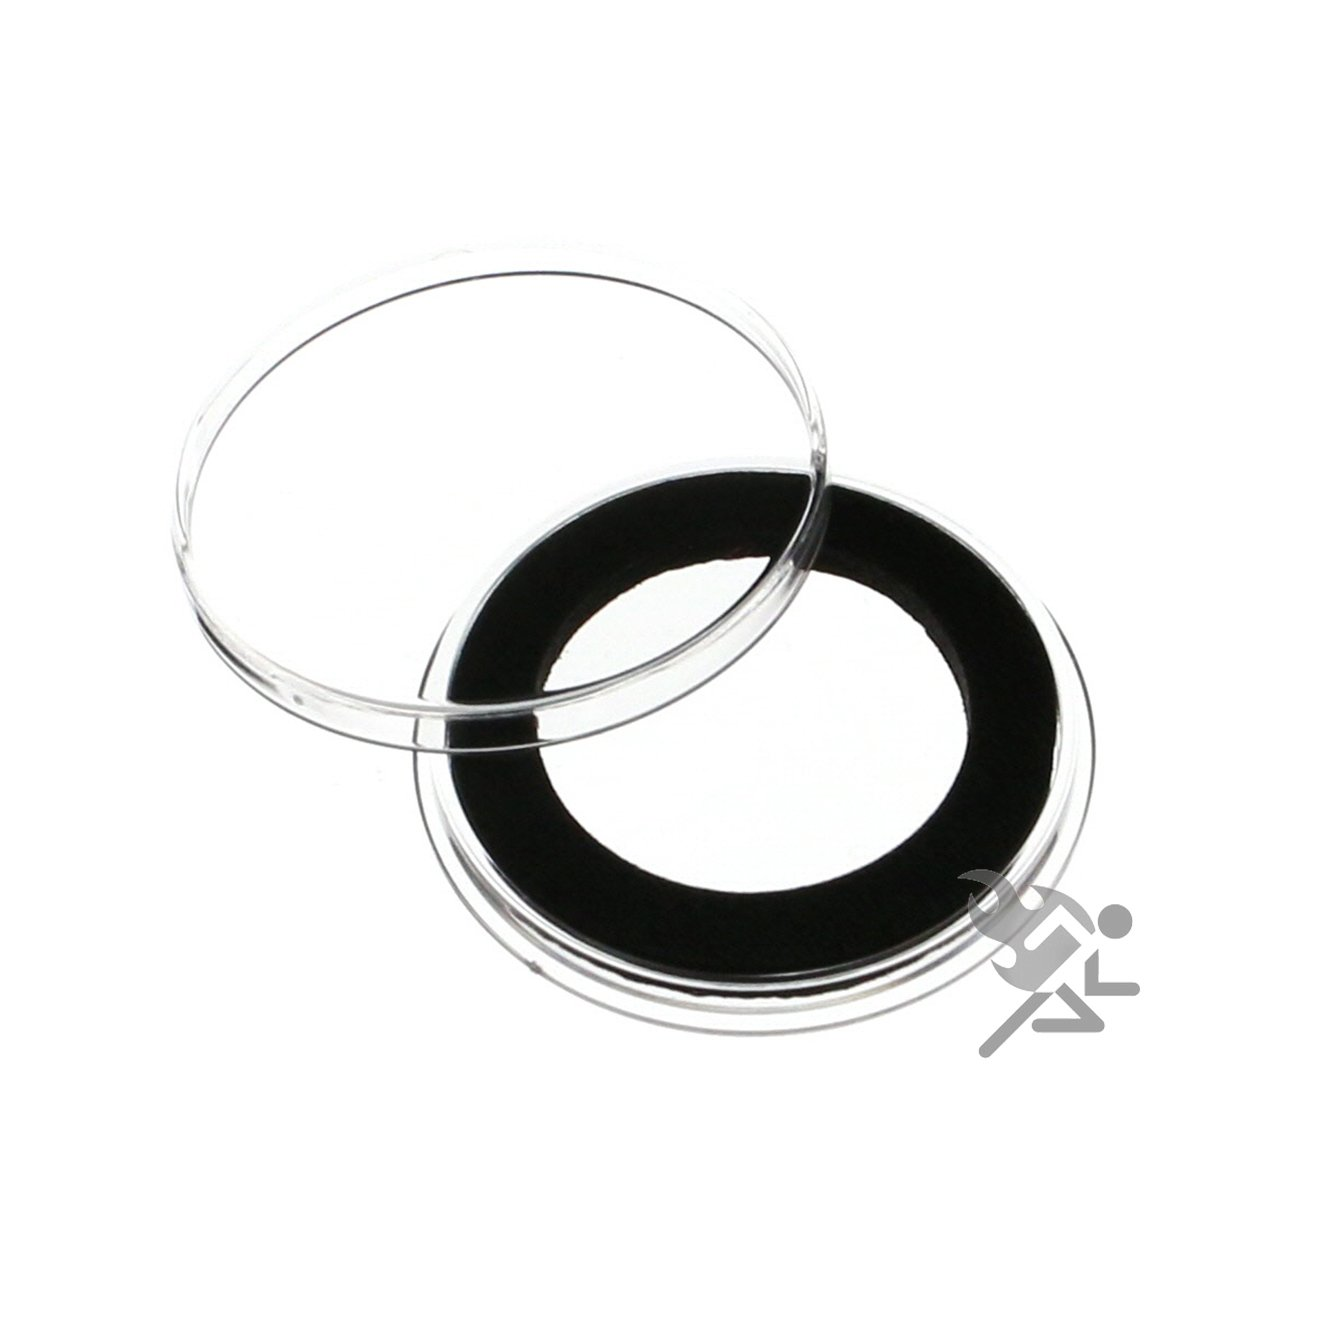 100 AIRTITE COIN HOLDER CAPSULE BLACK RING 28 MM